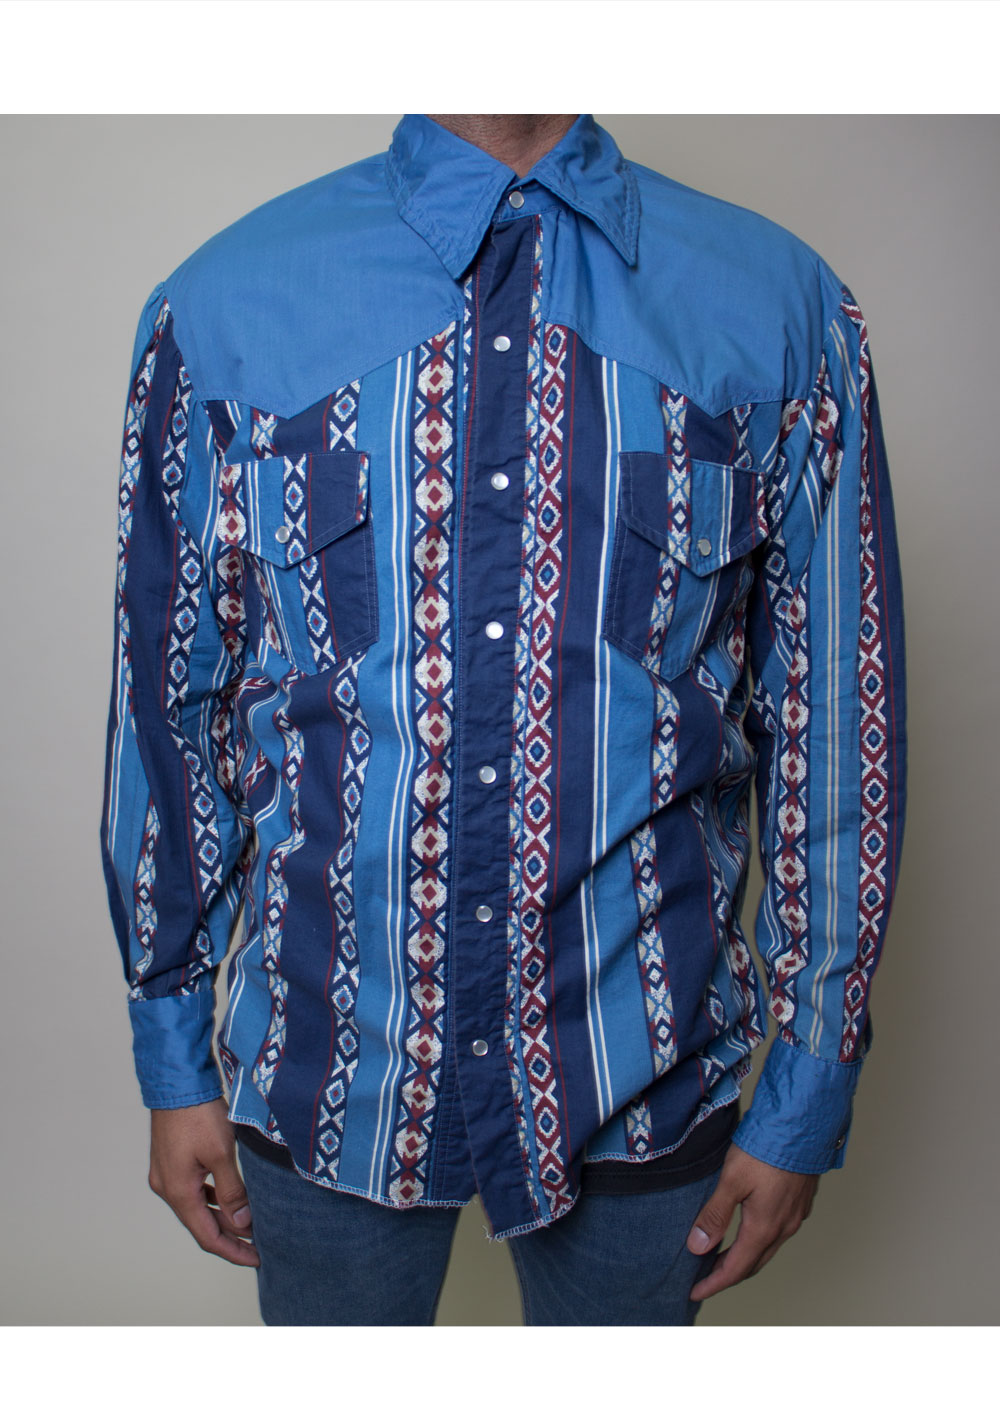 Jonas Button-Up Shirt